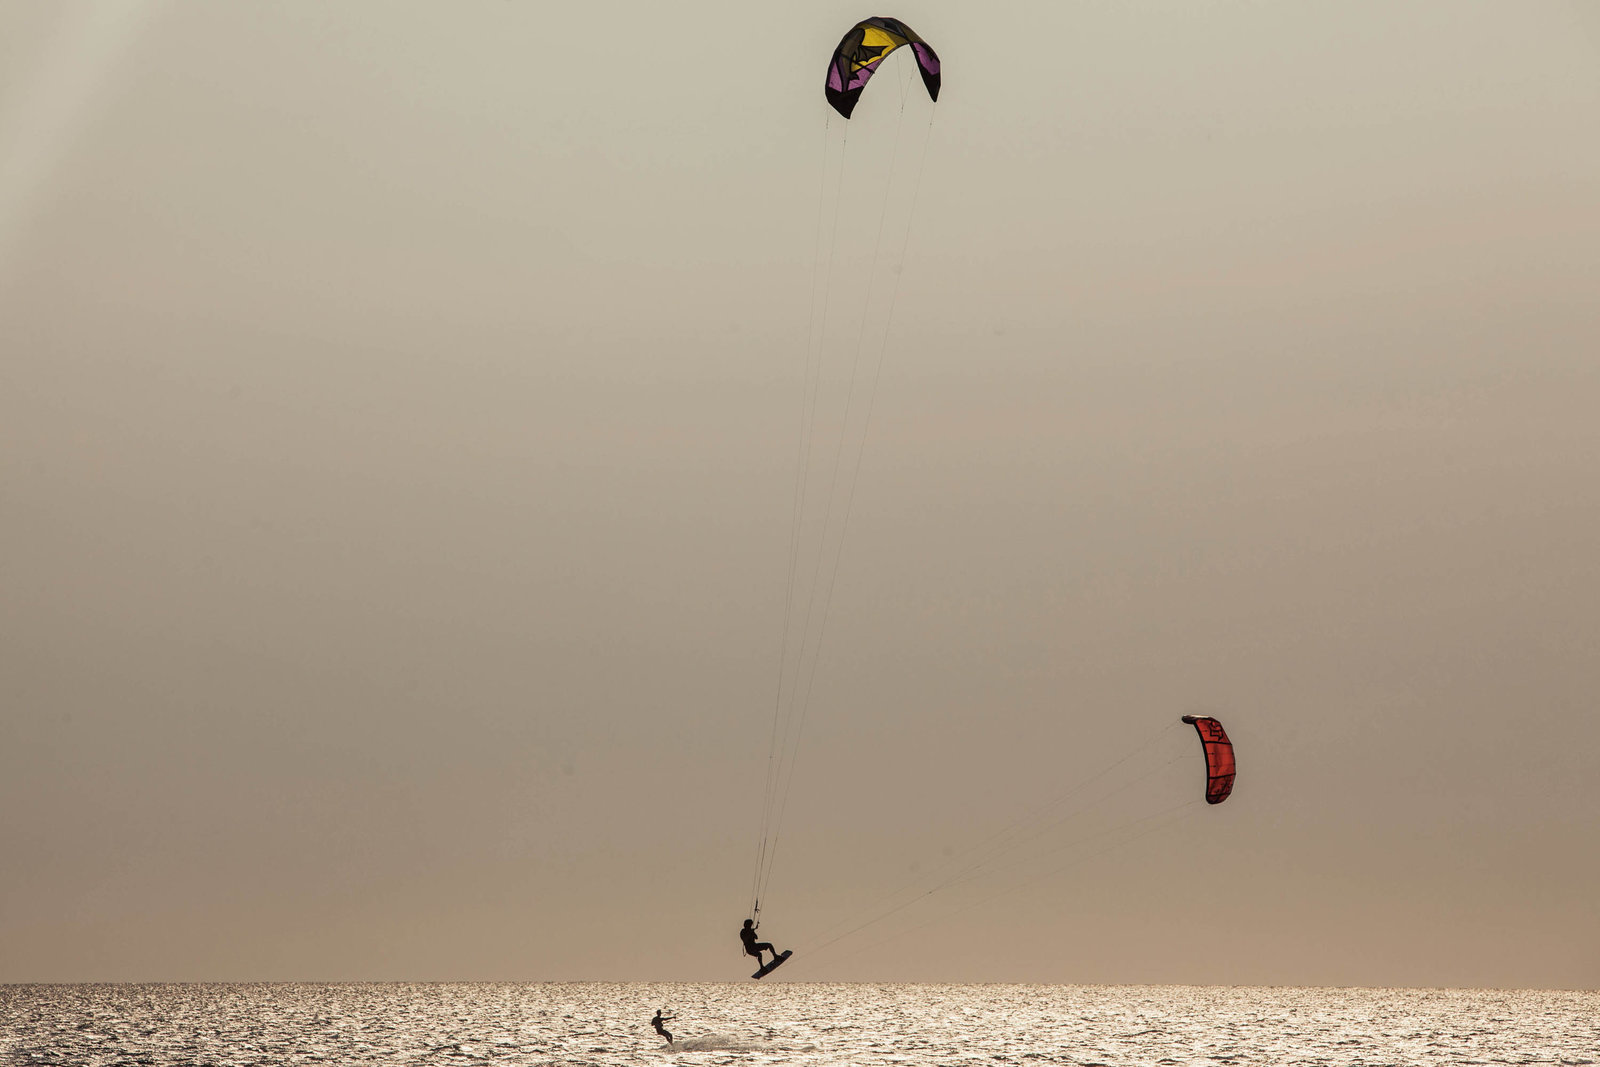 Kite-surf-sport-jump-bay-outer-banks-nc-kate-timbers-photography-1633